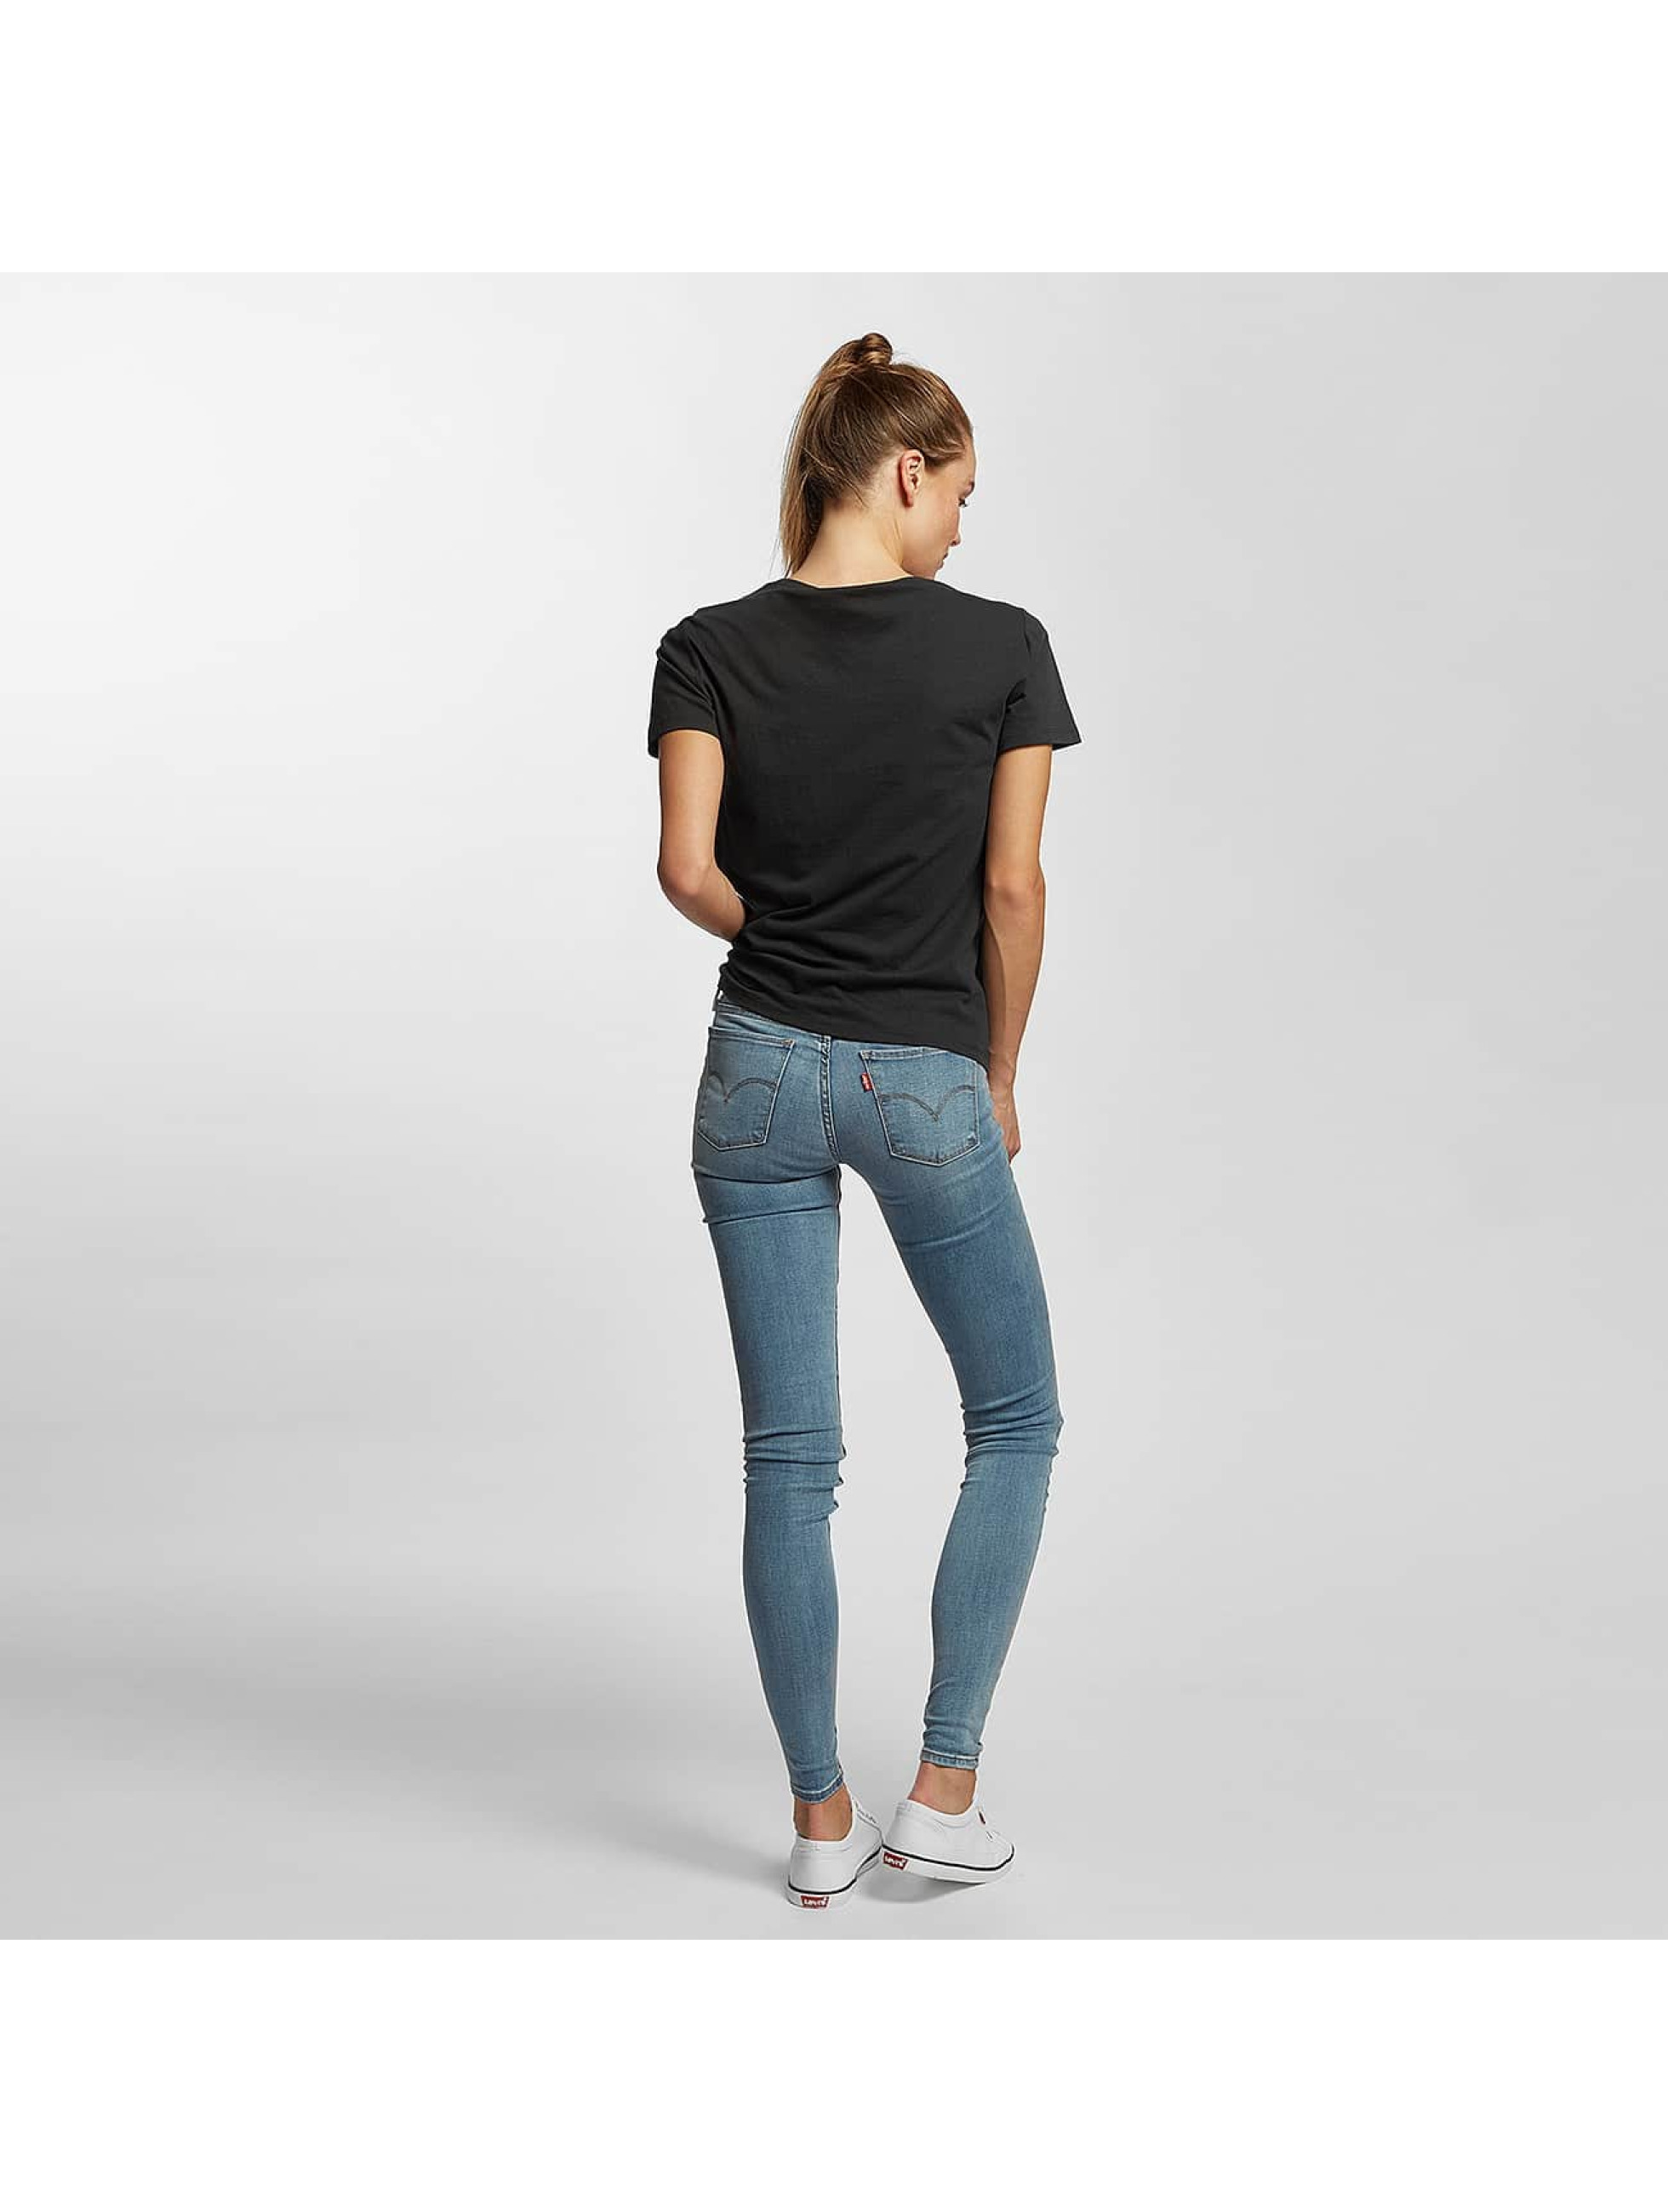 Levi's® T-Shirt Perfect Graphic Levi Strauss black